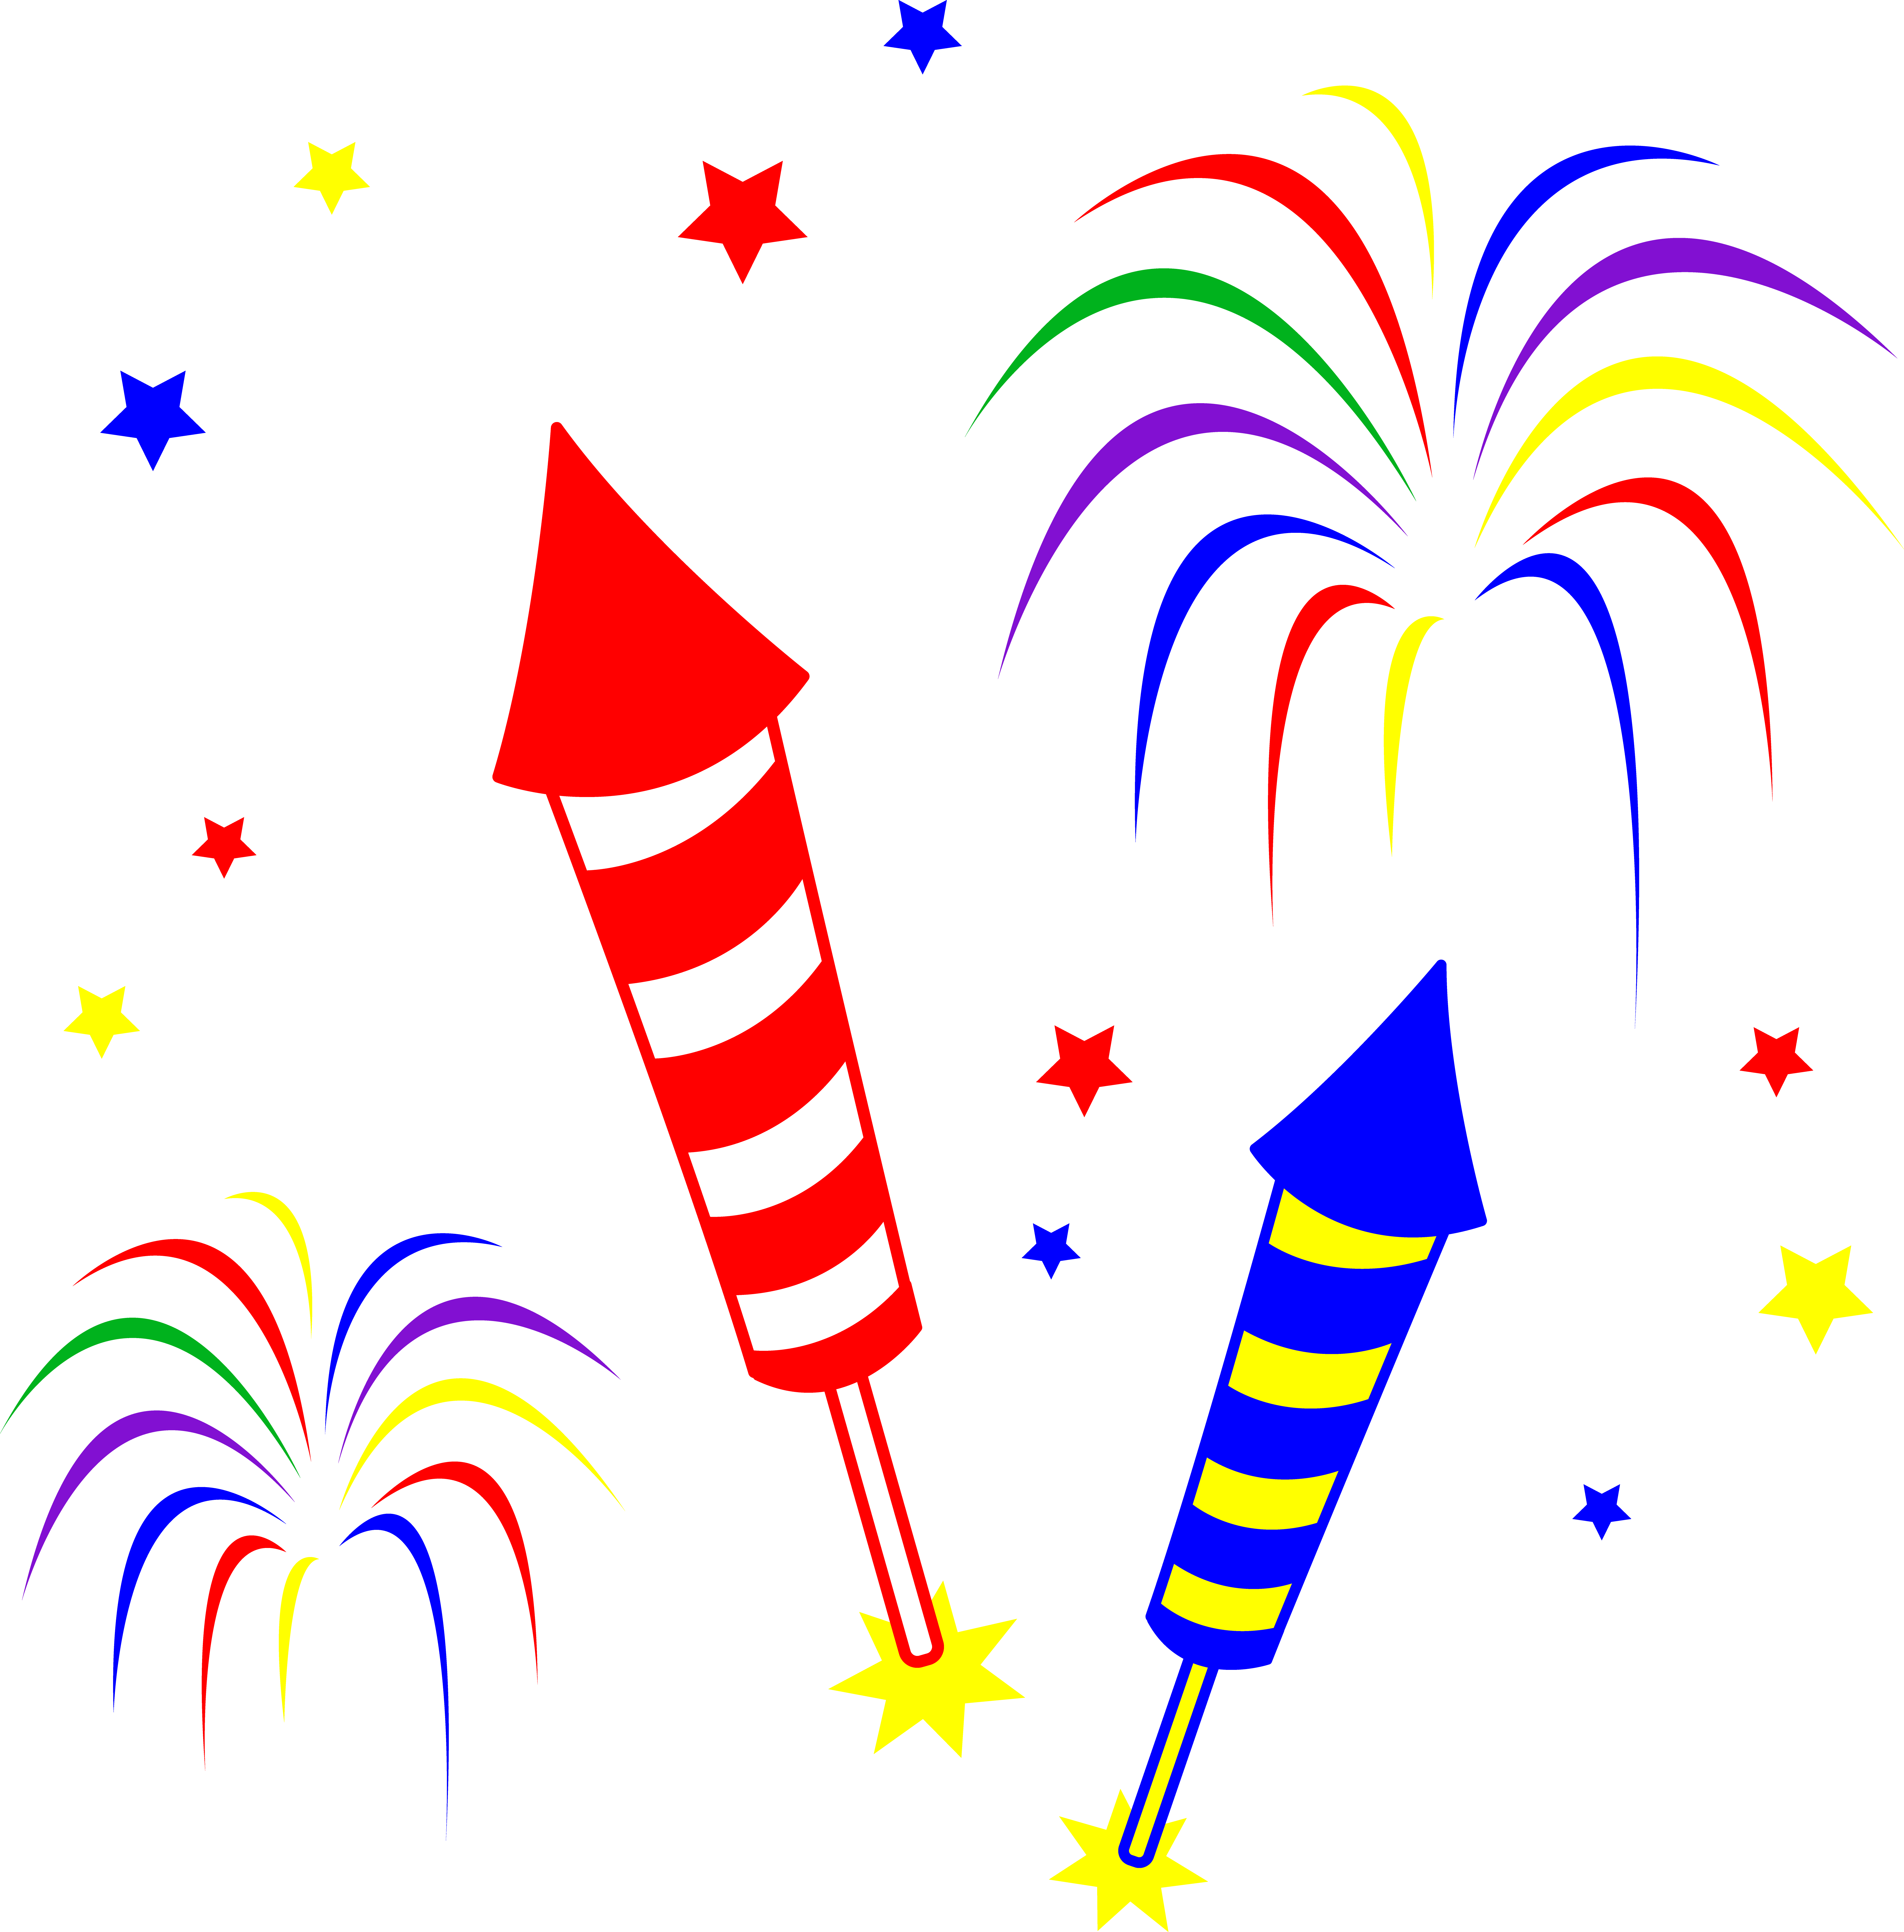 Fireworks Clip Art Animated Free | Clipart library - Free Clipart Images